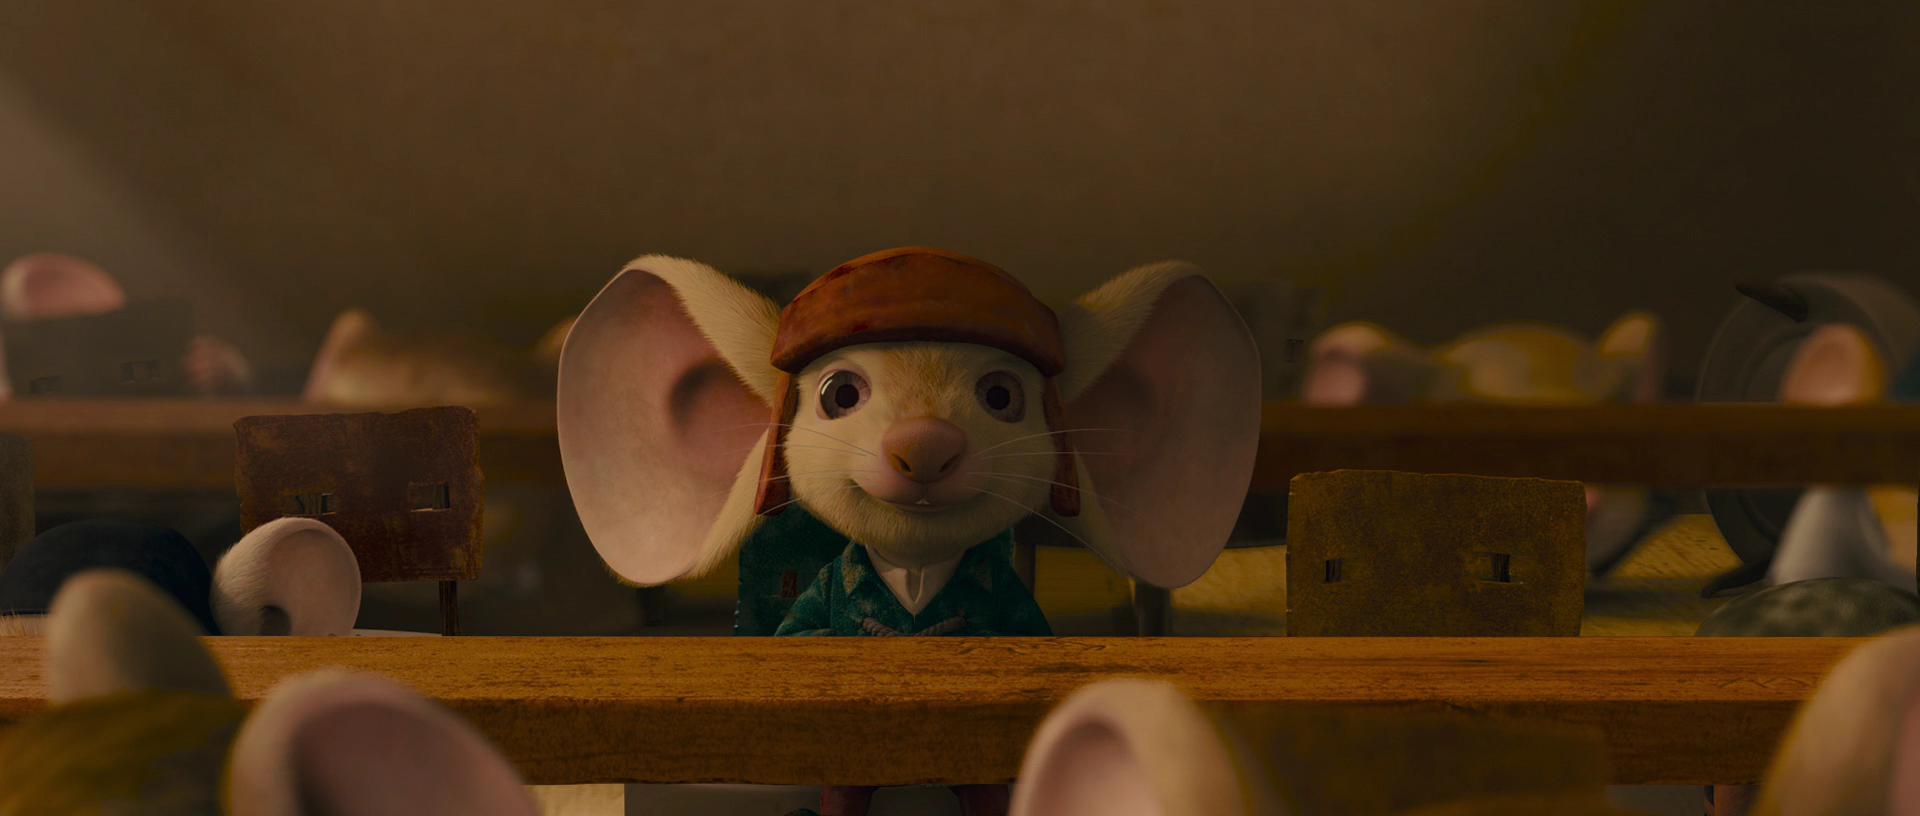 The Tale of Despereaux  Movie Page  DVD Bluray